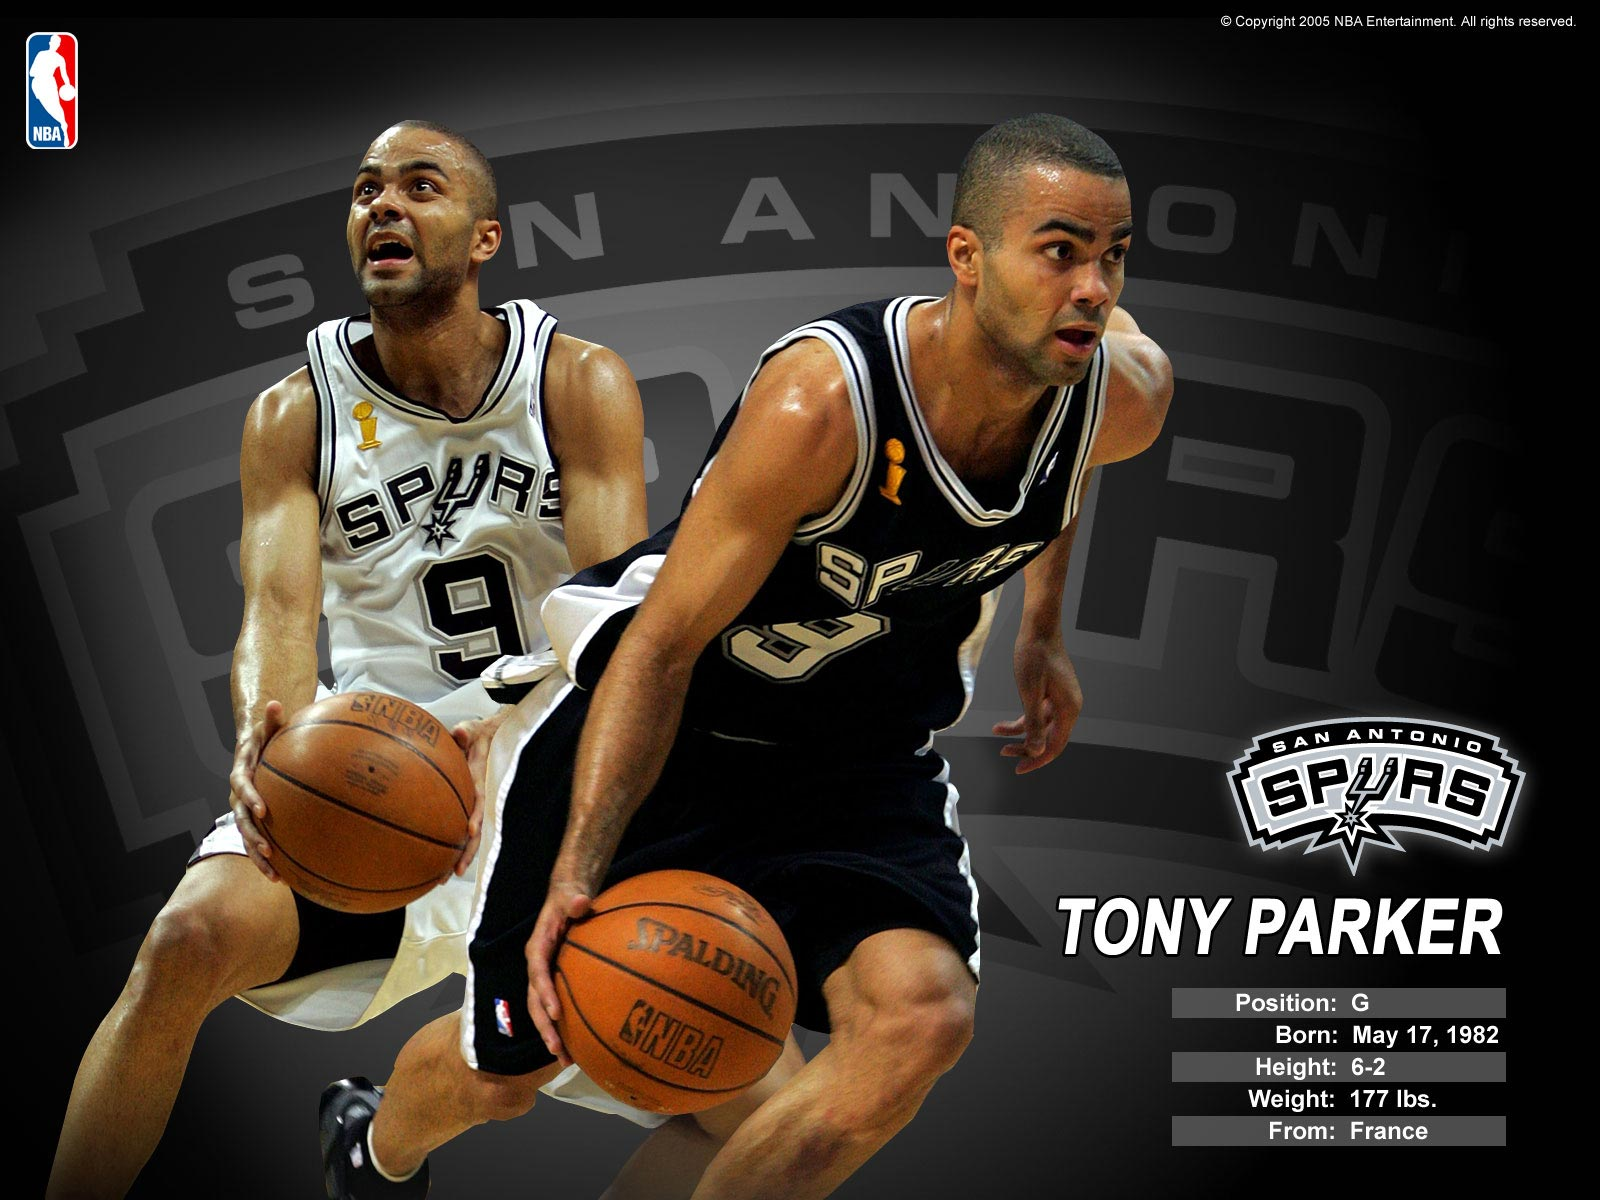 Tony parker wallpaper basketball wallpapers at basketwallpapers tony parker wallpaper voltagebd Choice Image